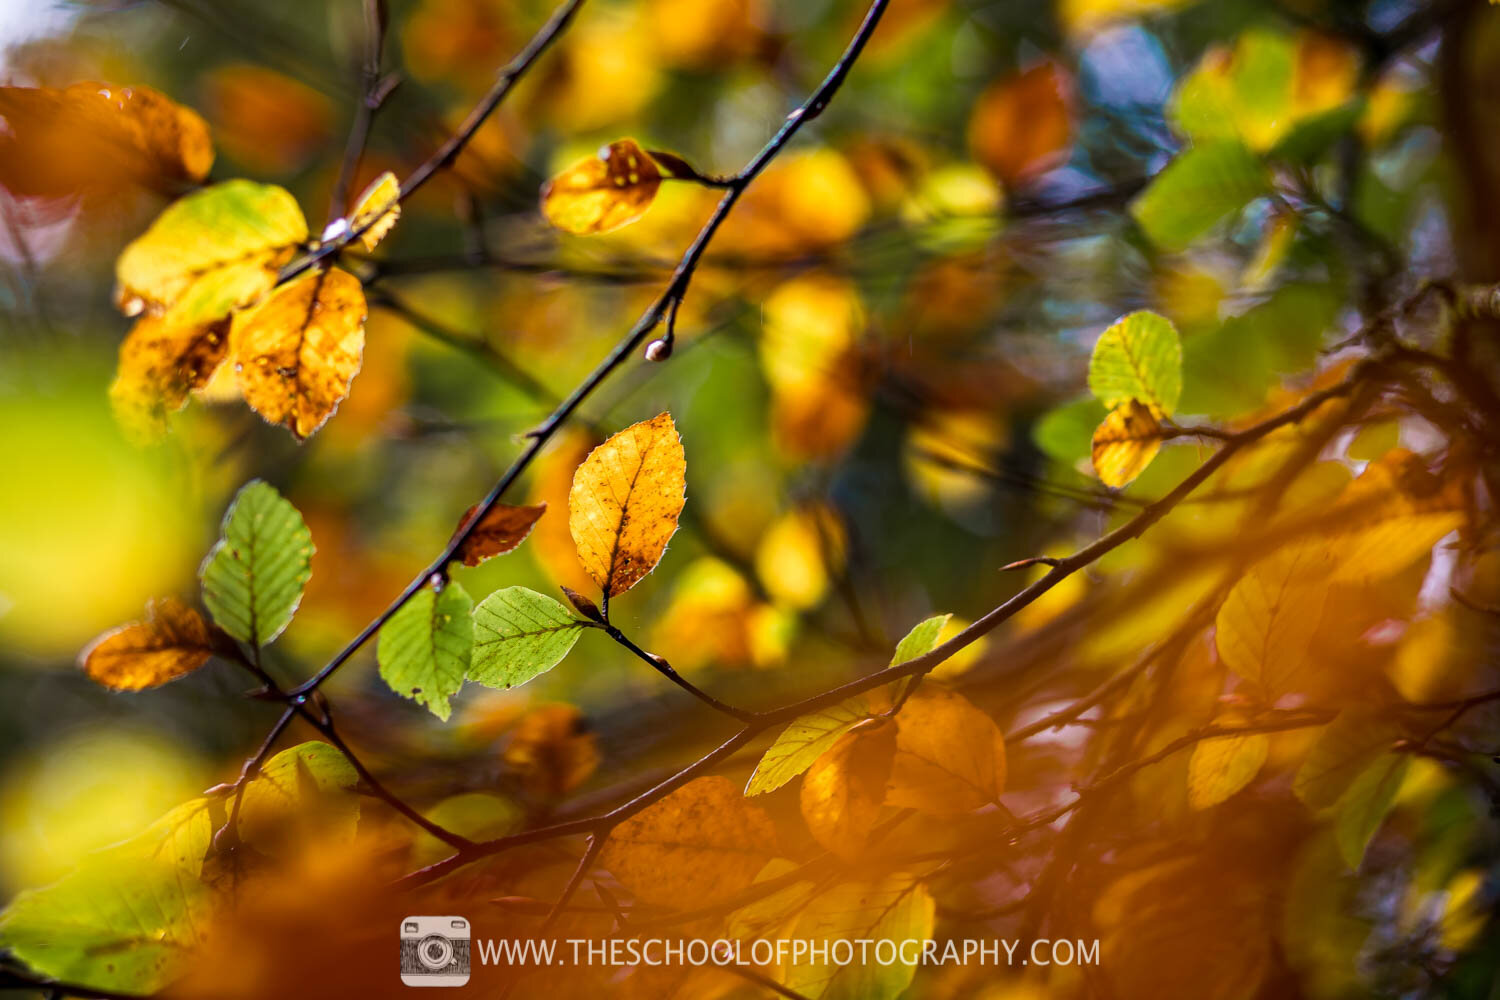 Photograph of Autumn leaves through the tress